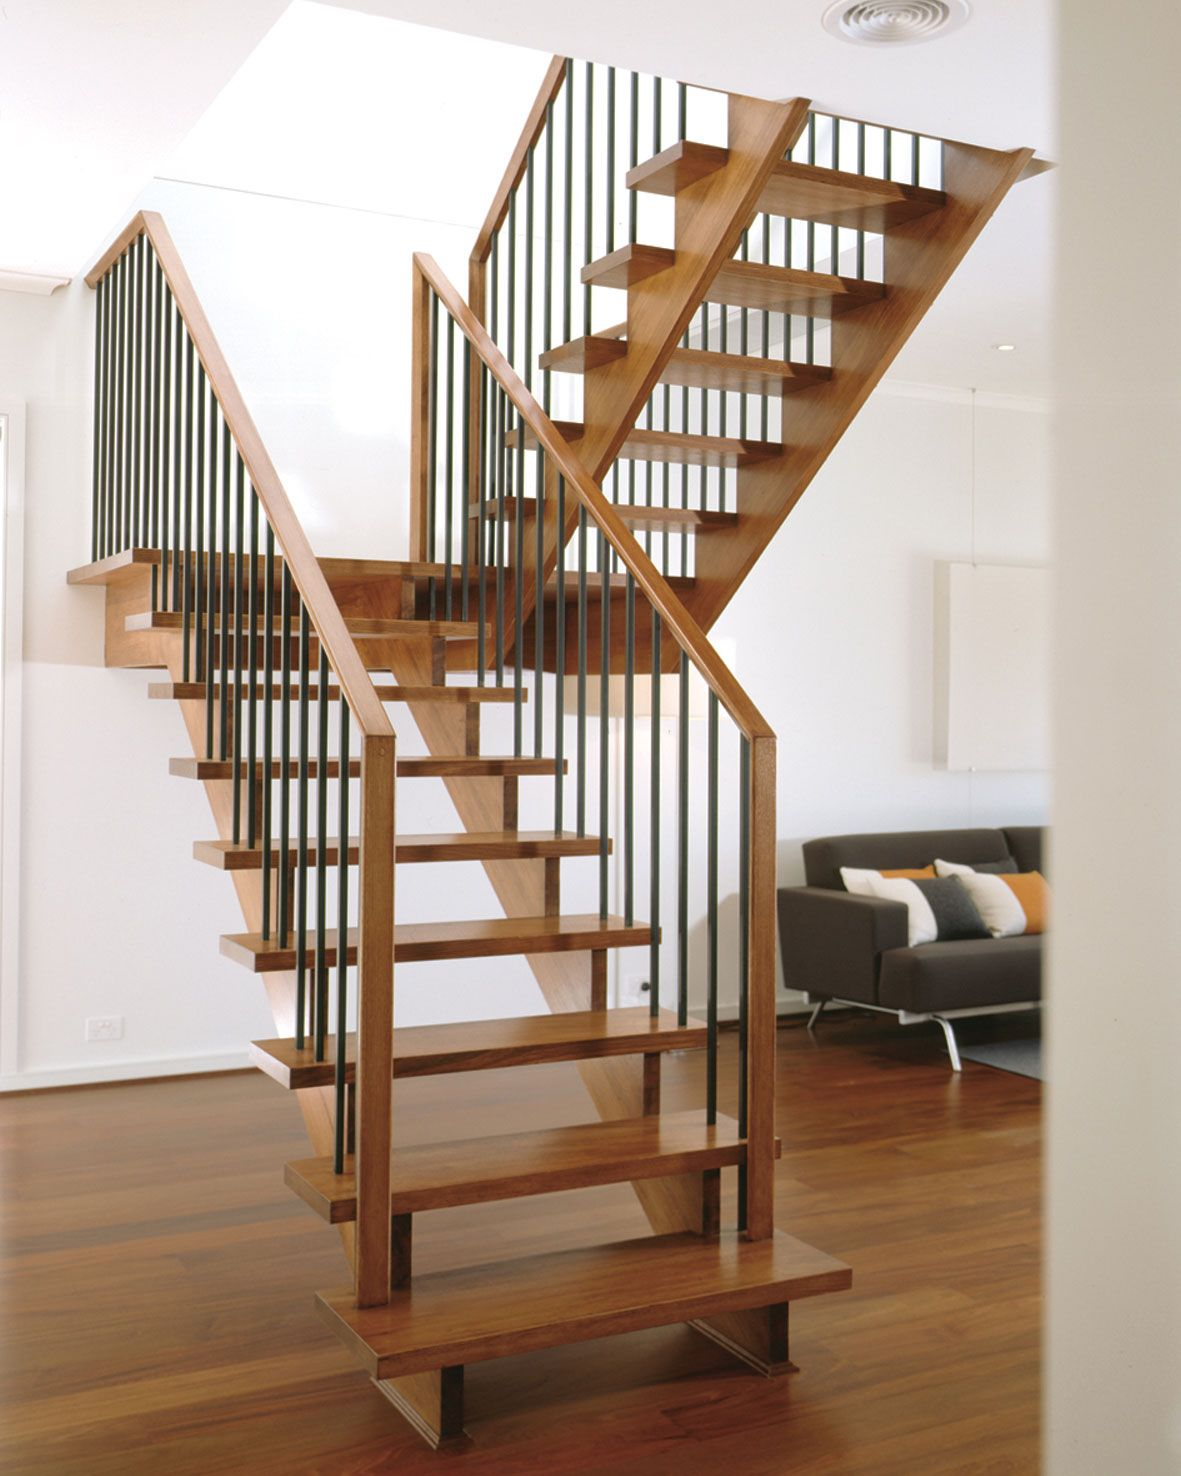 Interior Home Decoration Indoor Stairs Design Pictures: Stunning Staircase Designs In Home Interior With Wooden